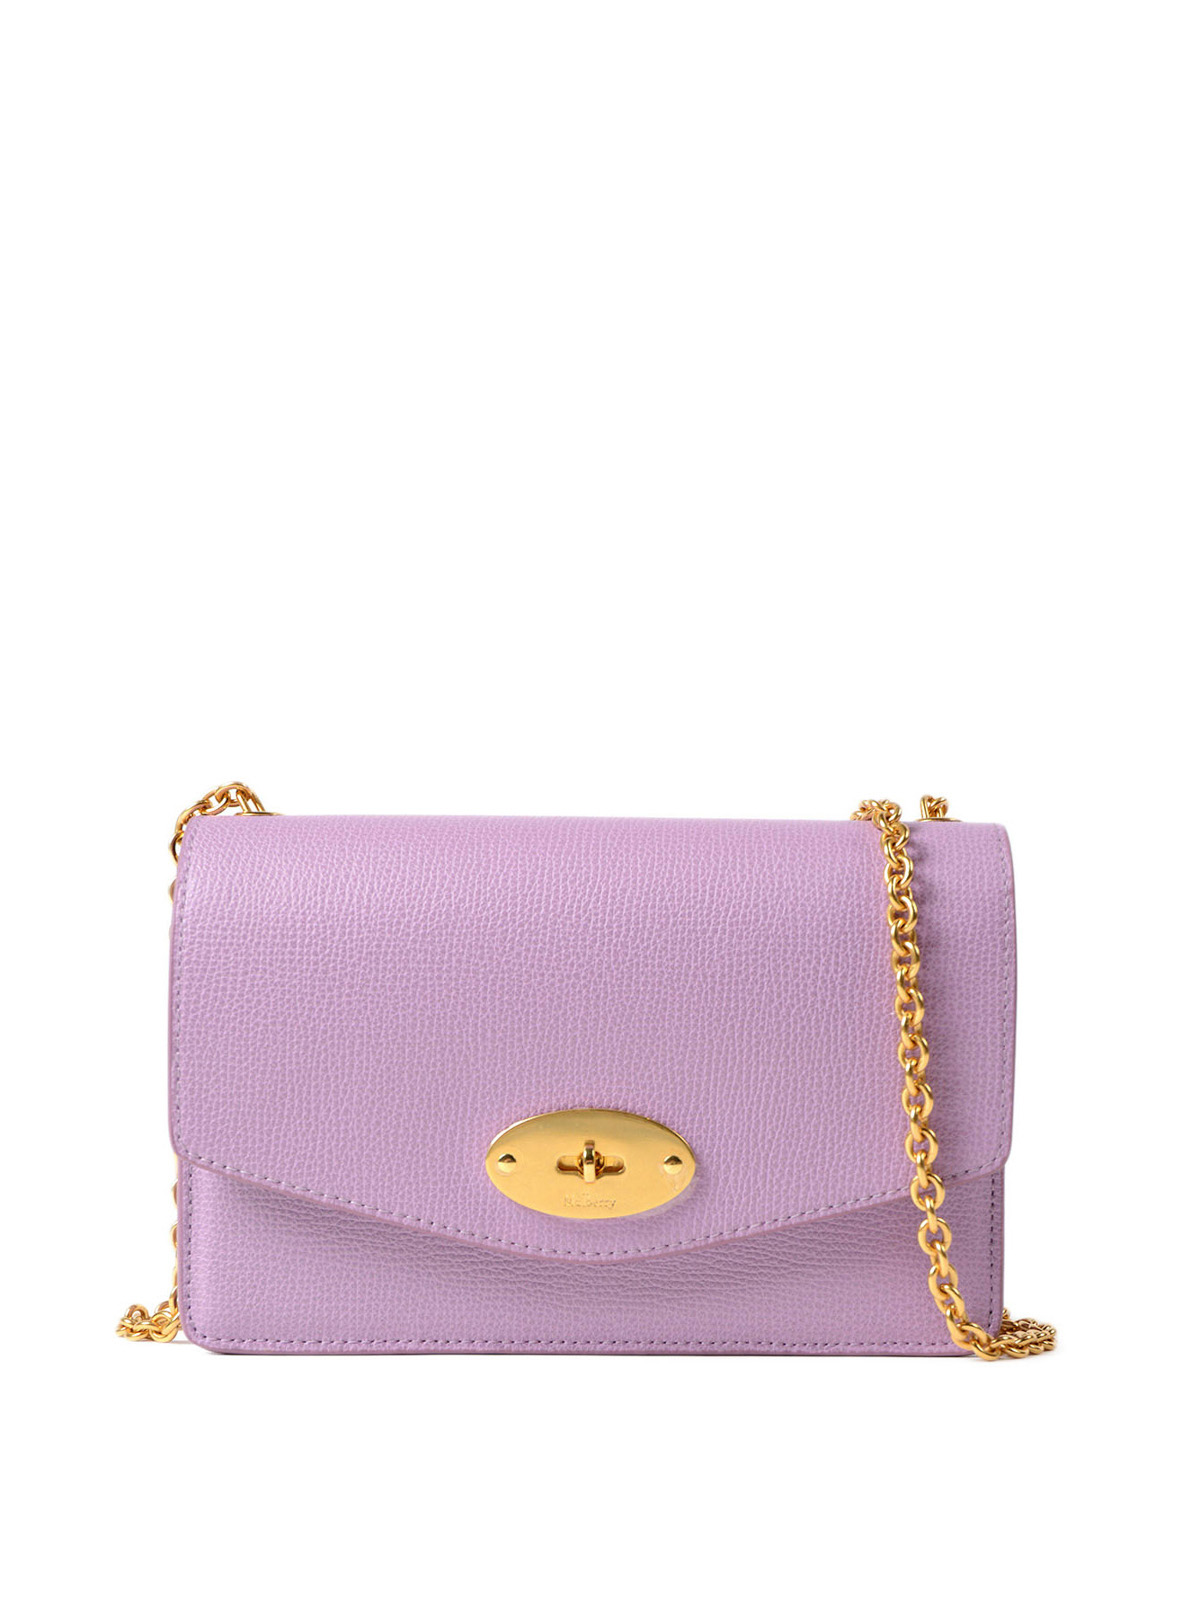 b2e8d3d874c ... classic grain rl4495 205h661 00c6f 48097  spain mulberry clutches  darley lilac leather small clutch 624ae 74d4b